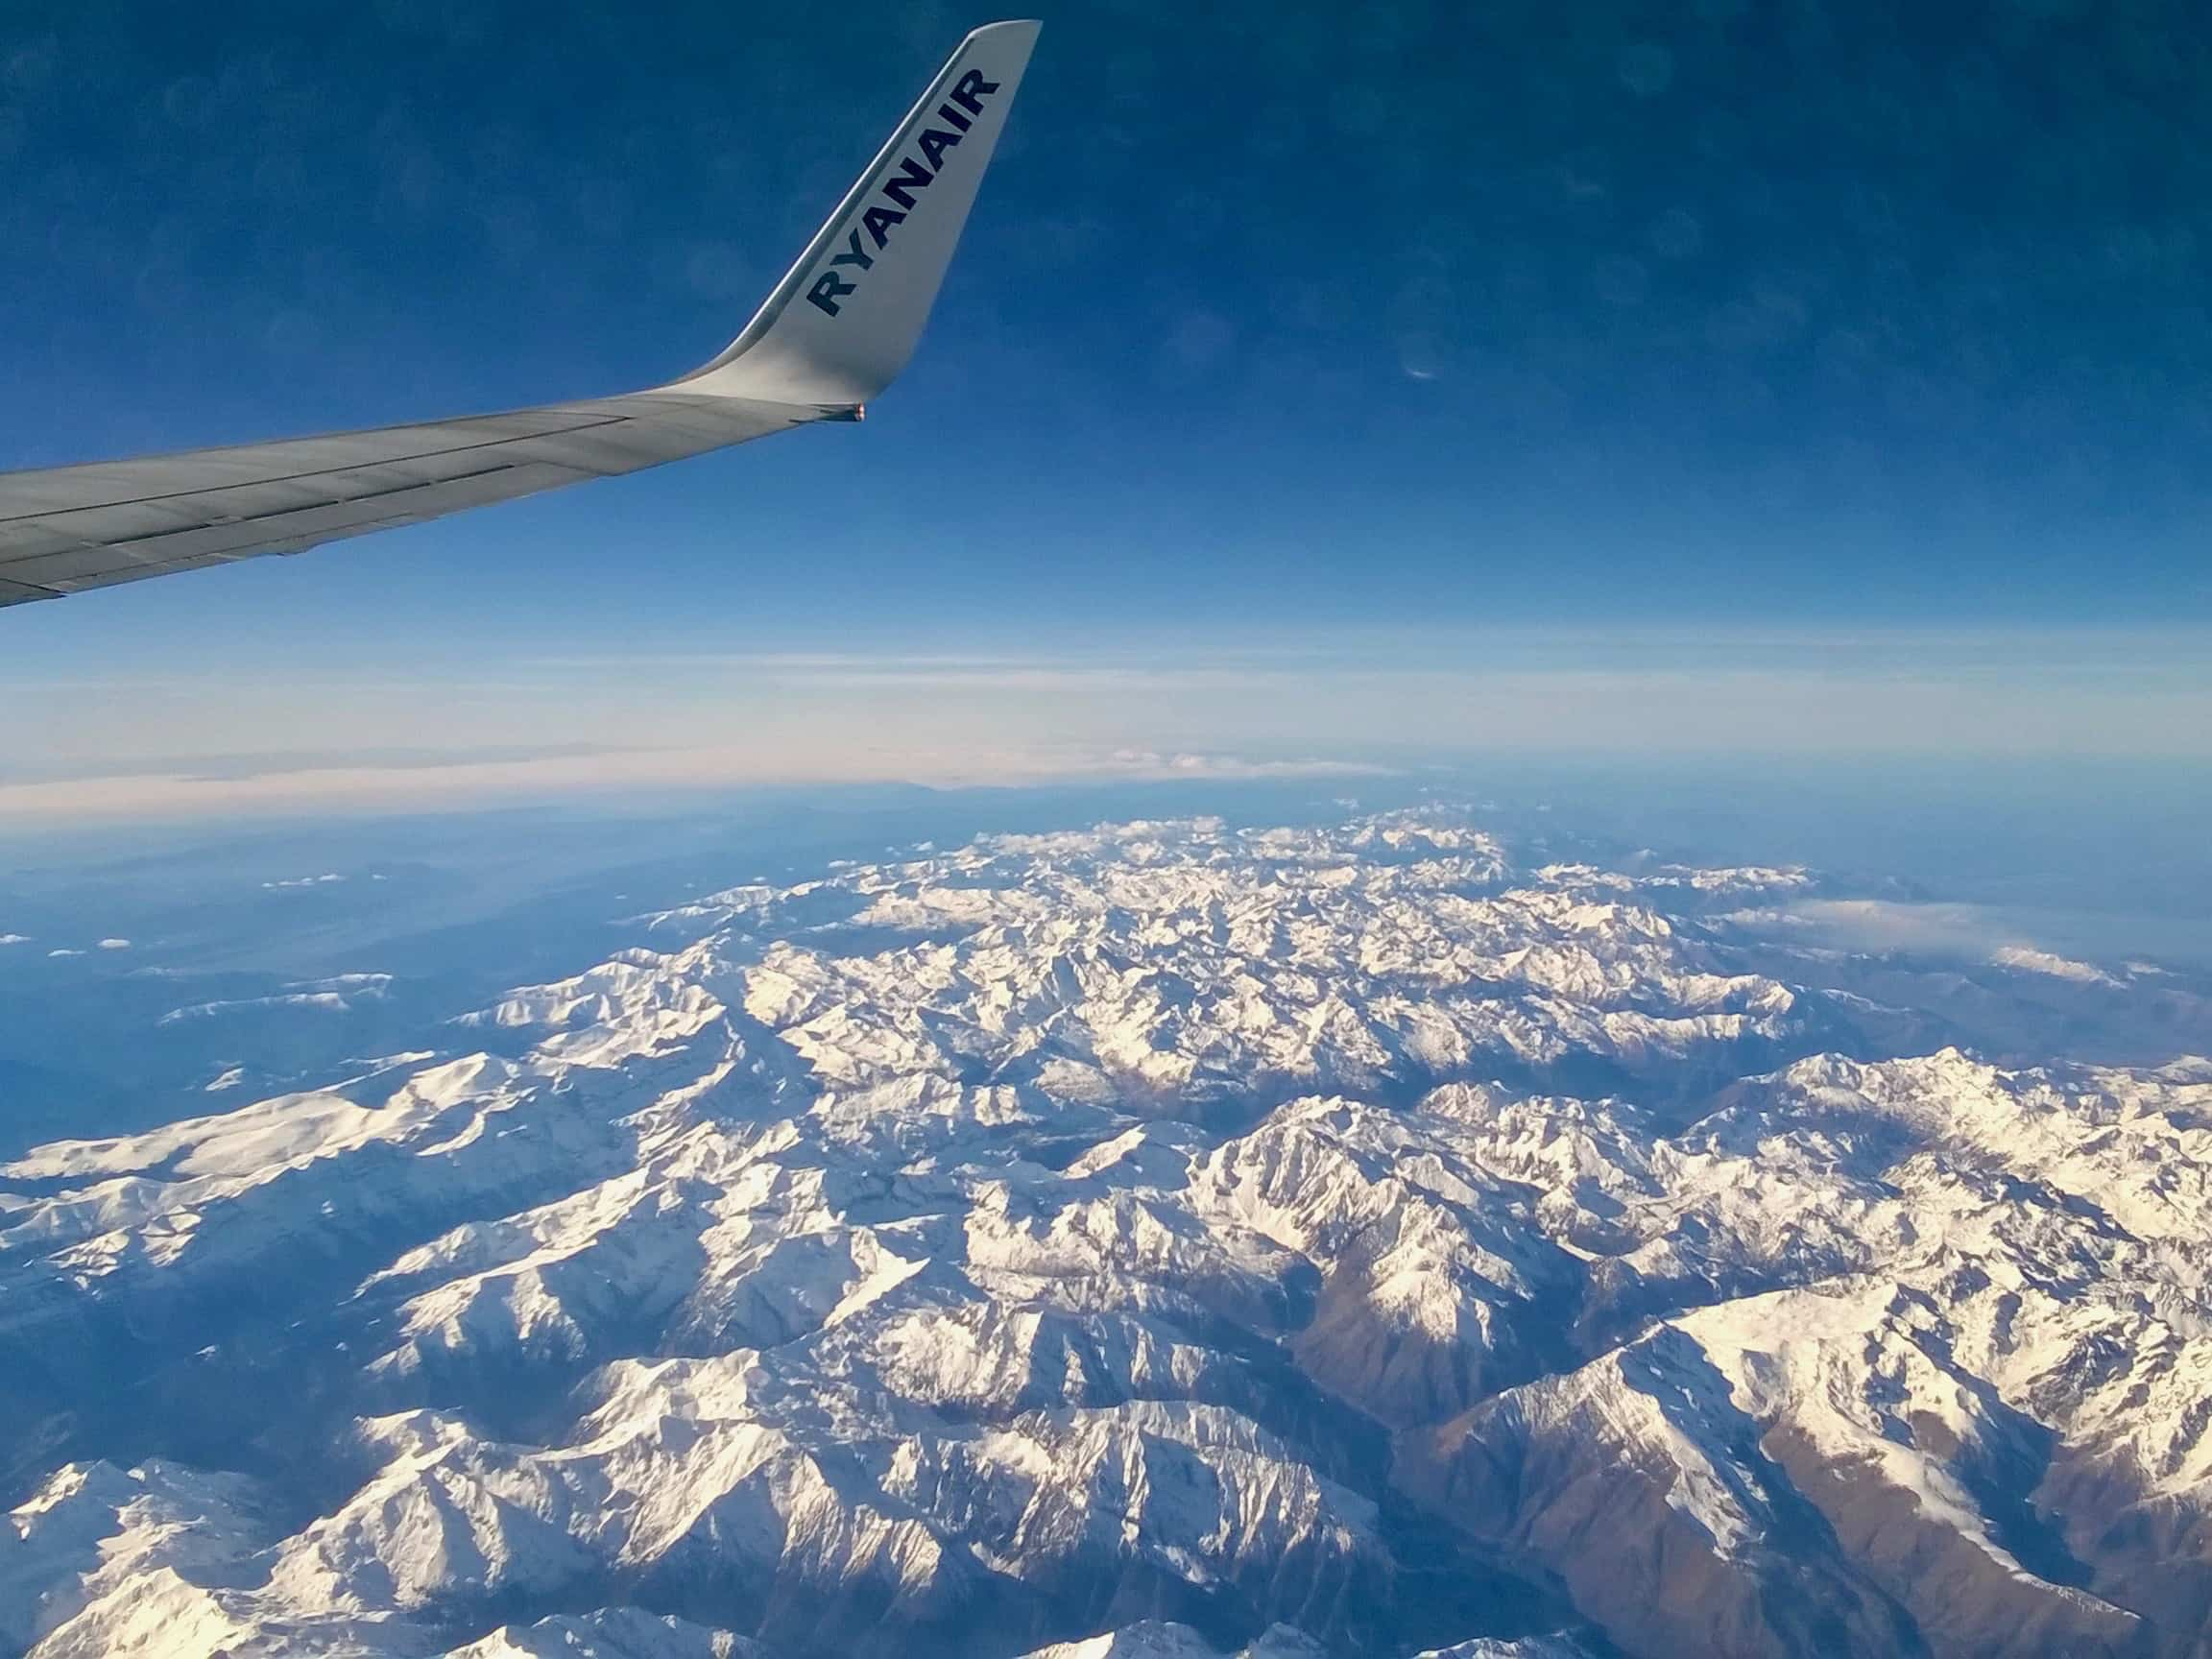 View of the mountains out of the plane window